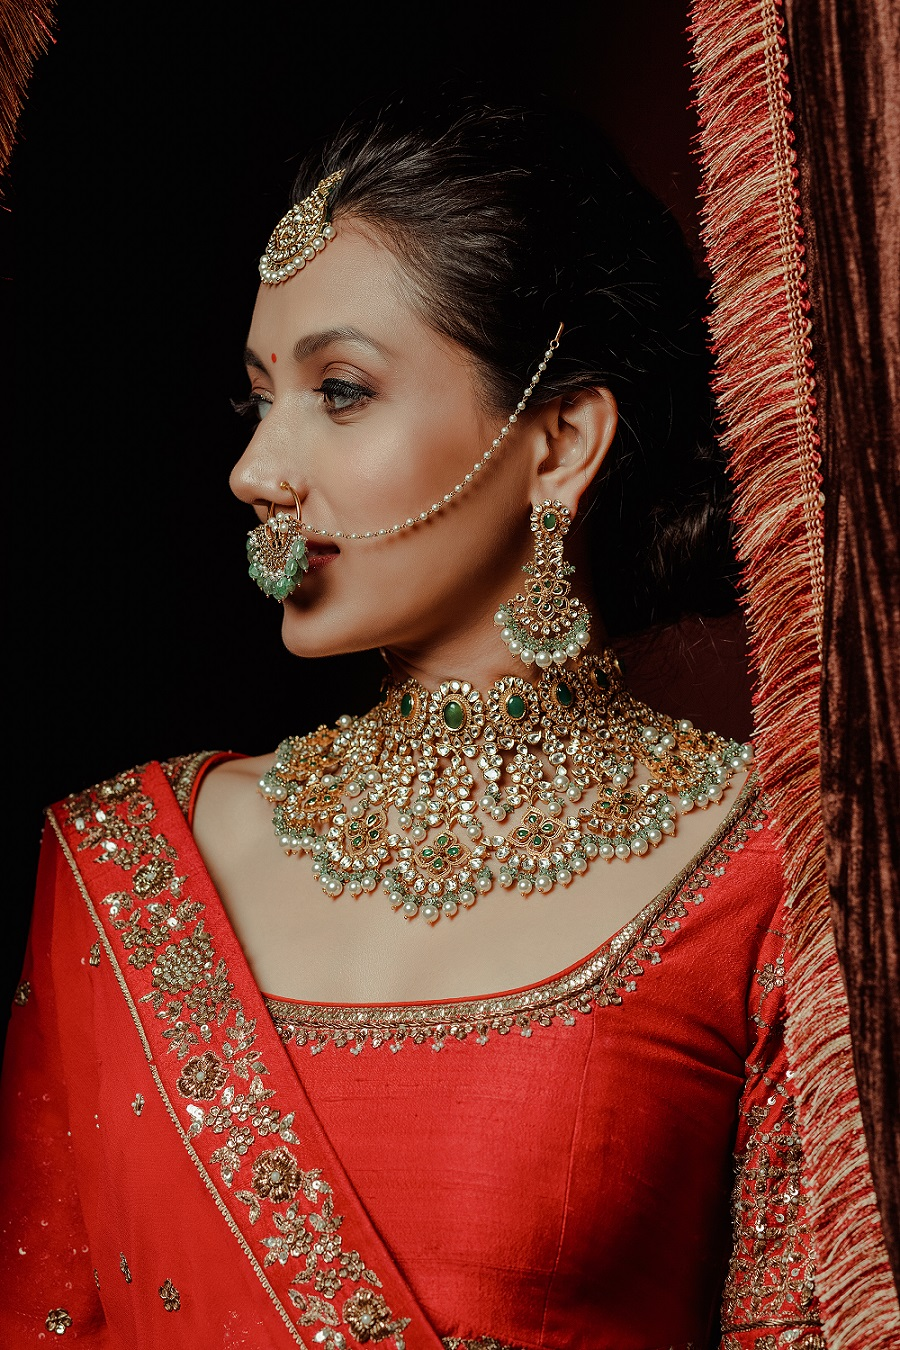 6 Classic Bridal Jewellery Must-Haves from Pooja Diamonds